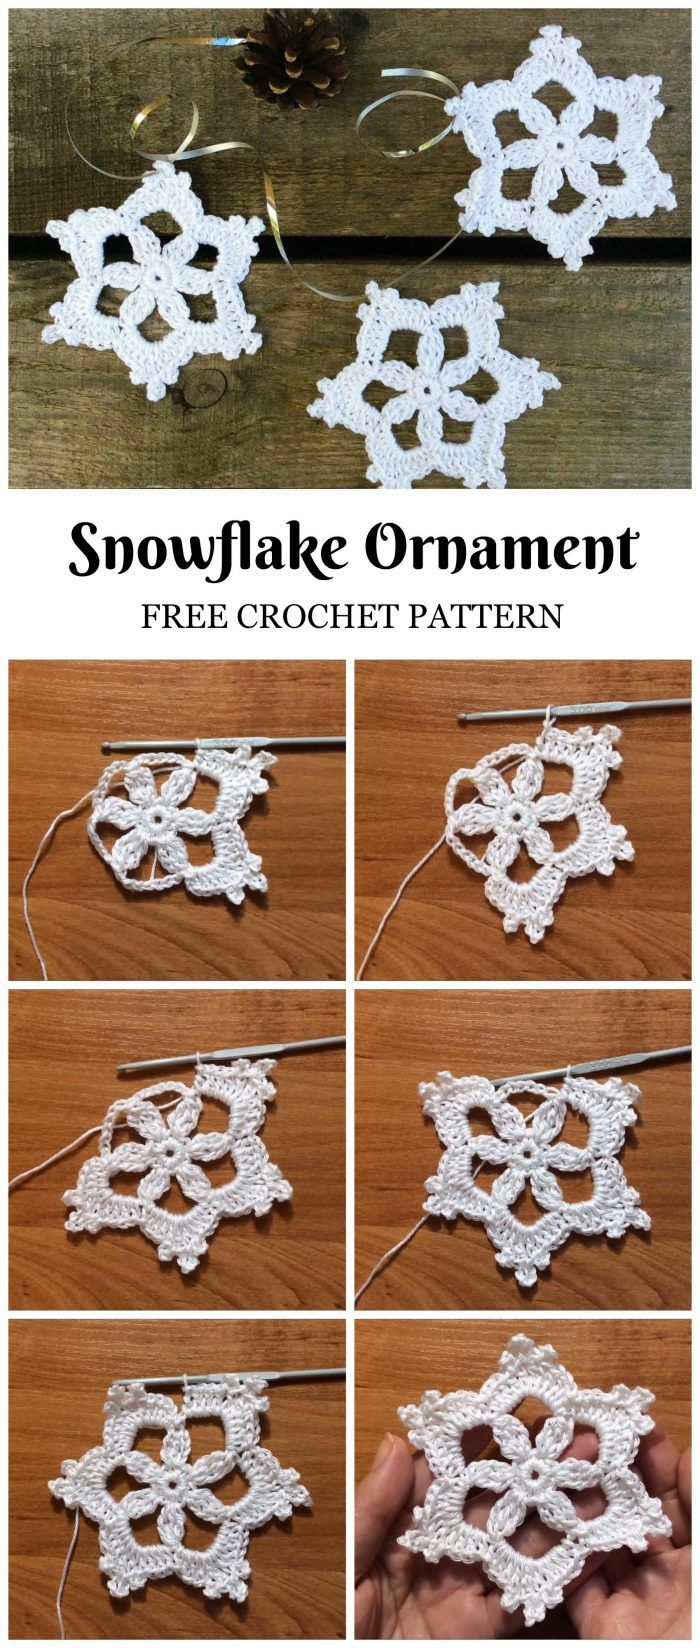 Crochet Snowflake Patterns For Beginners Crochet Snowflake Pattern Christmas Crochet Patterns Crochet Snowflakes